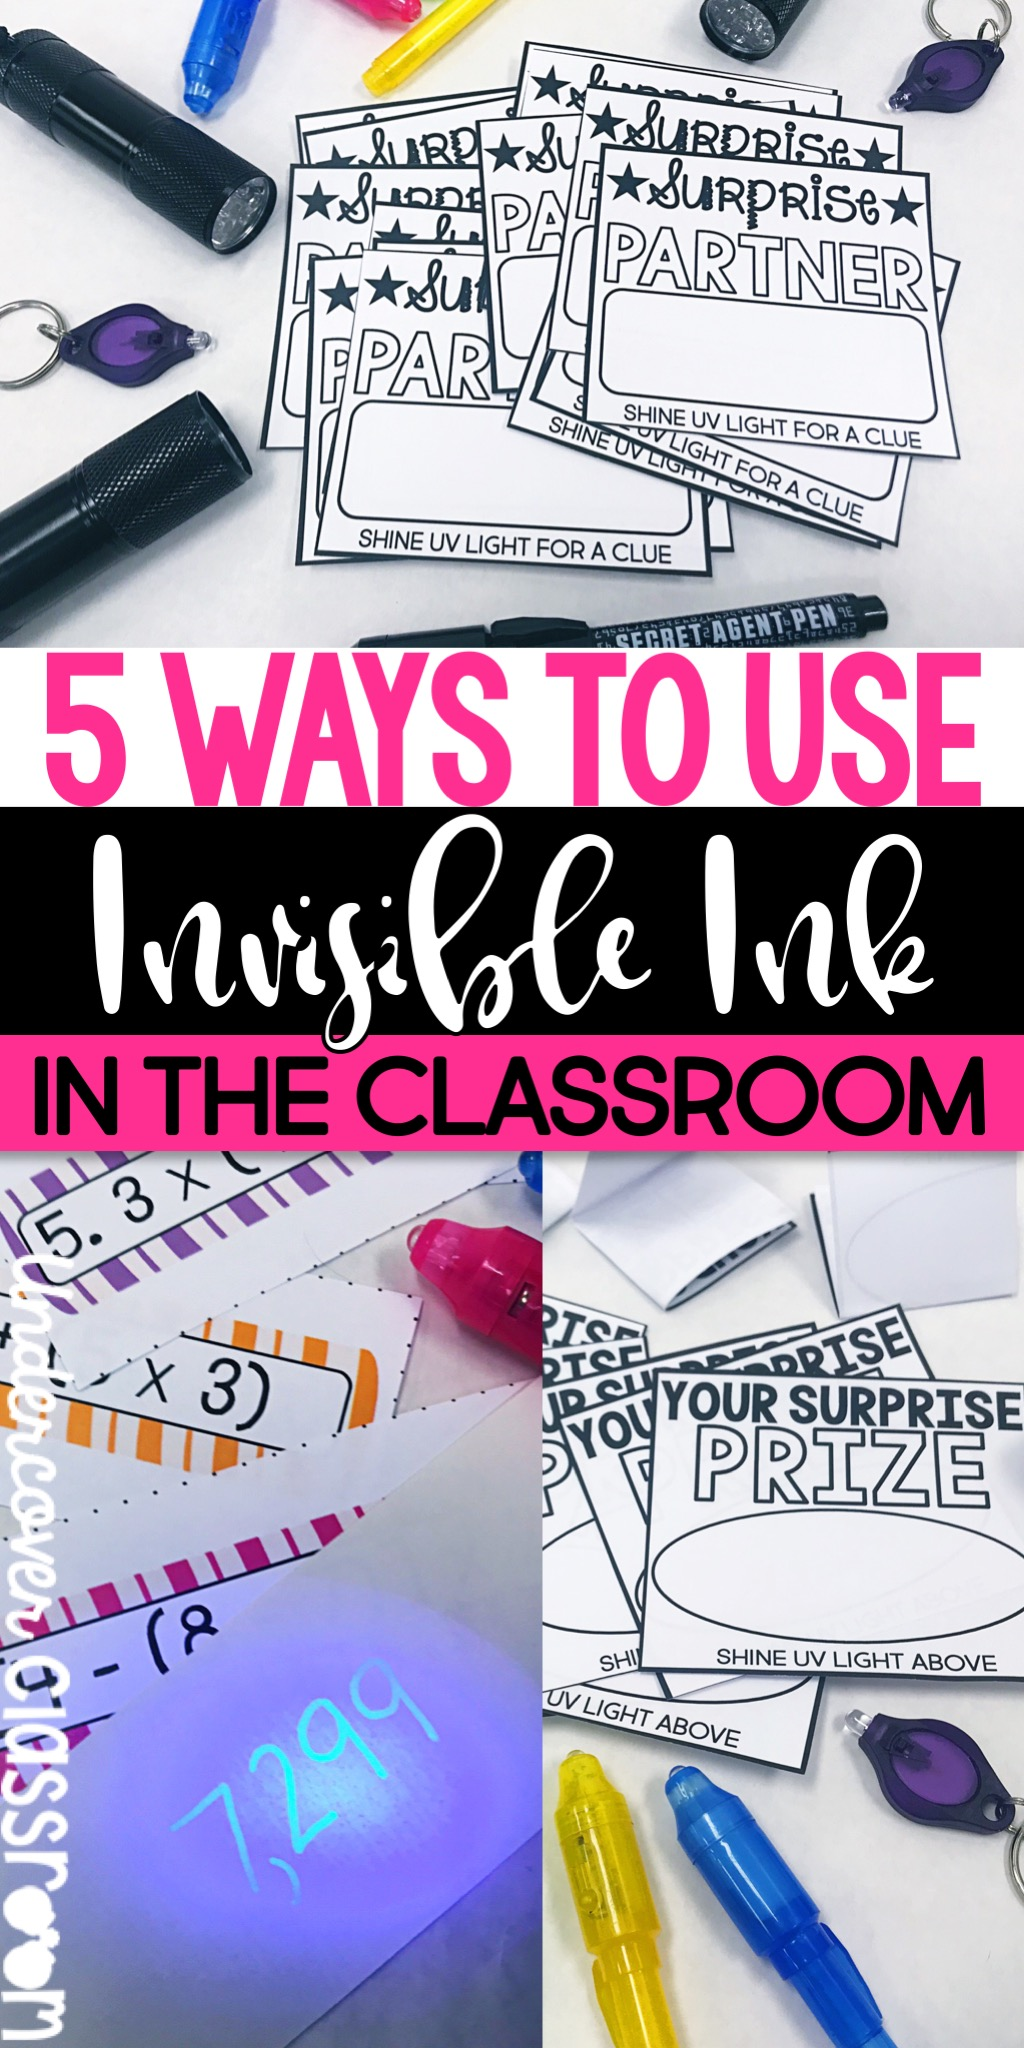 Surprise your students with invisible ink! Here's 5 ways to motivate your students using invisible ink and UV flashlights in the classroom.